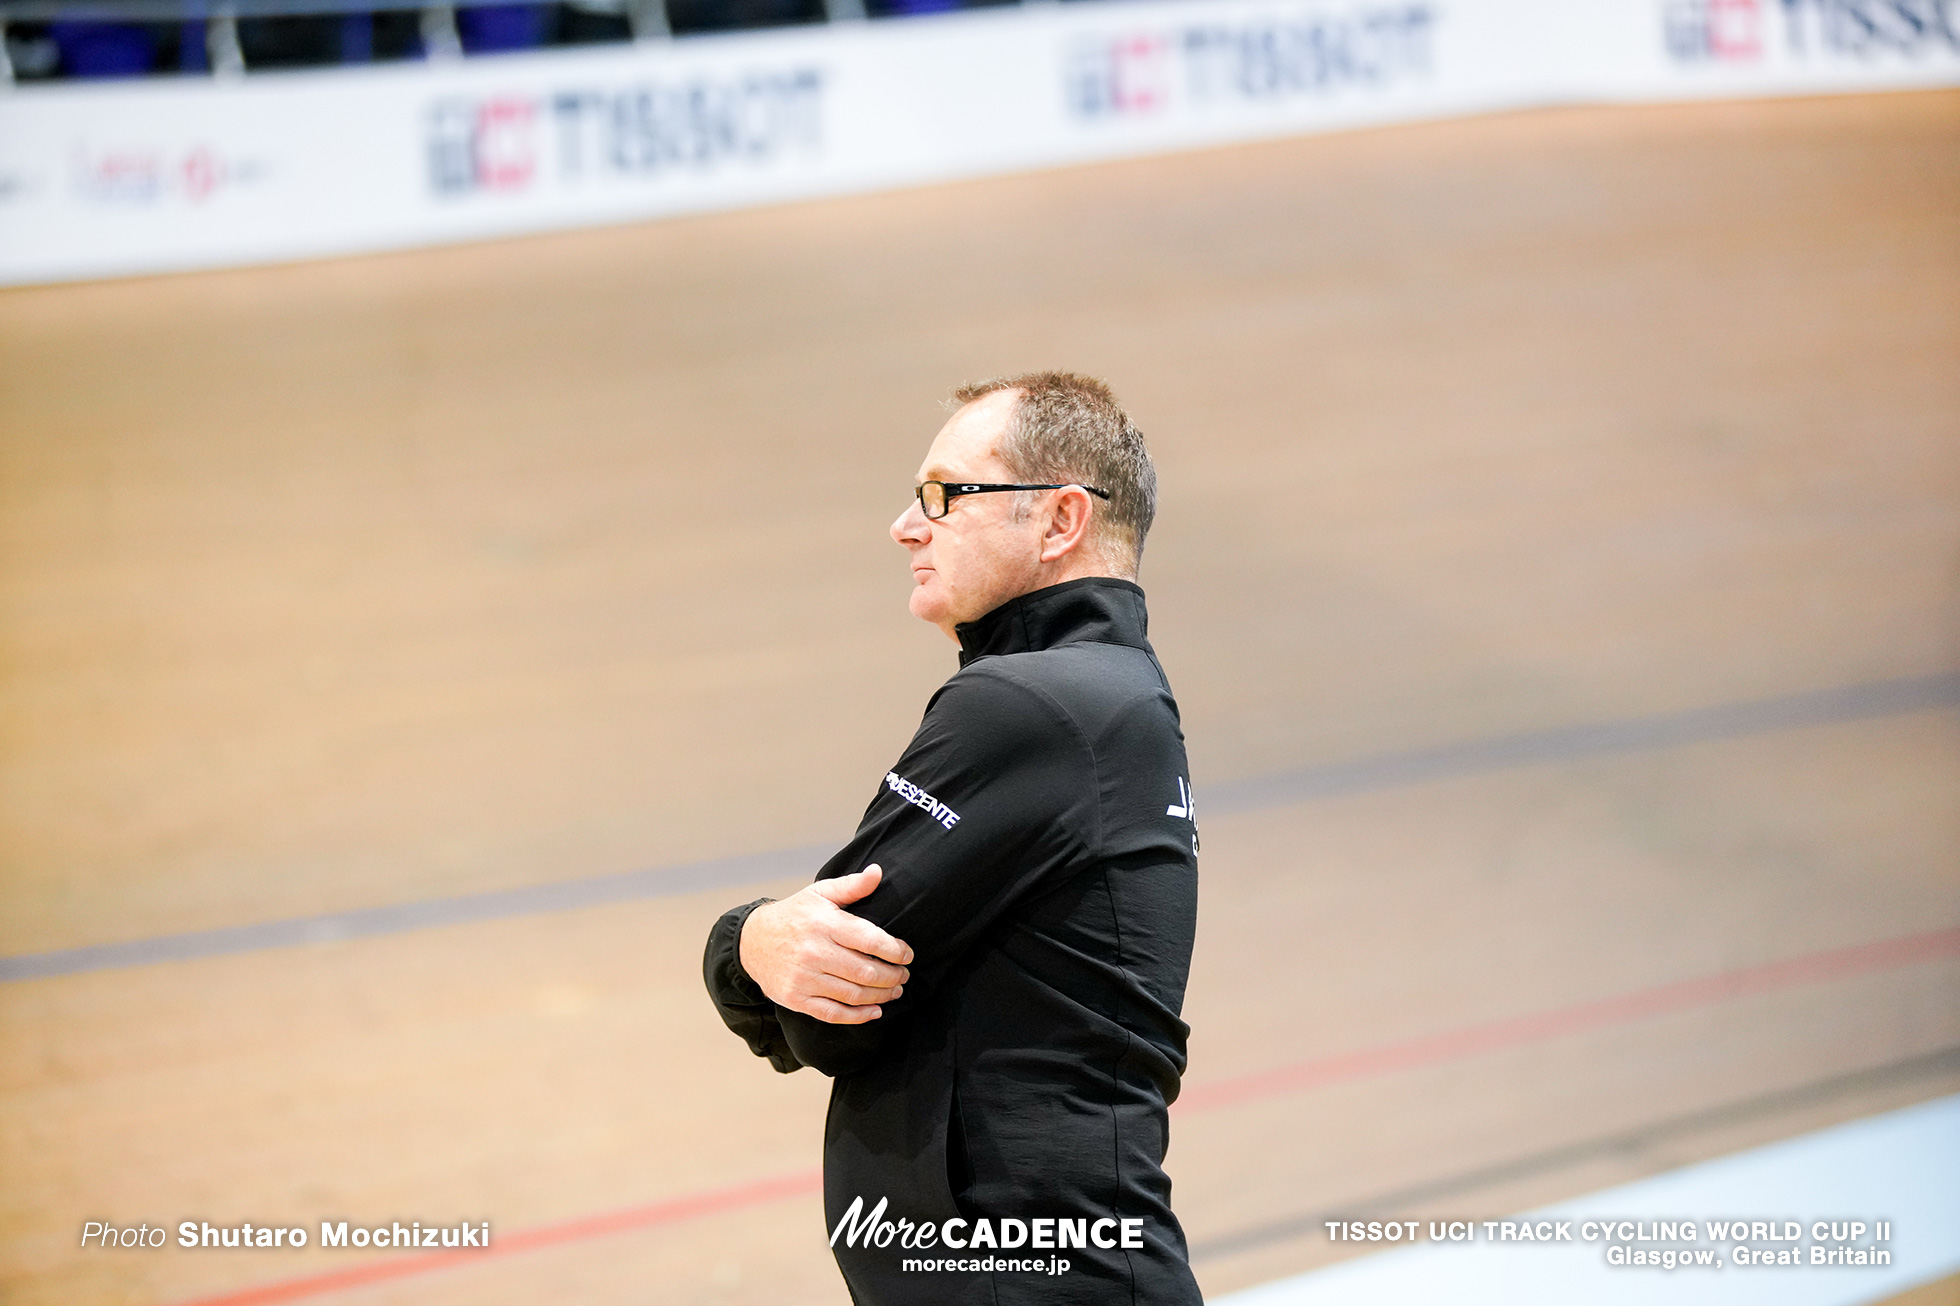 クレイグ・グリフィン TISSOT UCI TRACK CYCLING WORLD CUP II, Glasgow, Great Britain